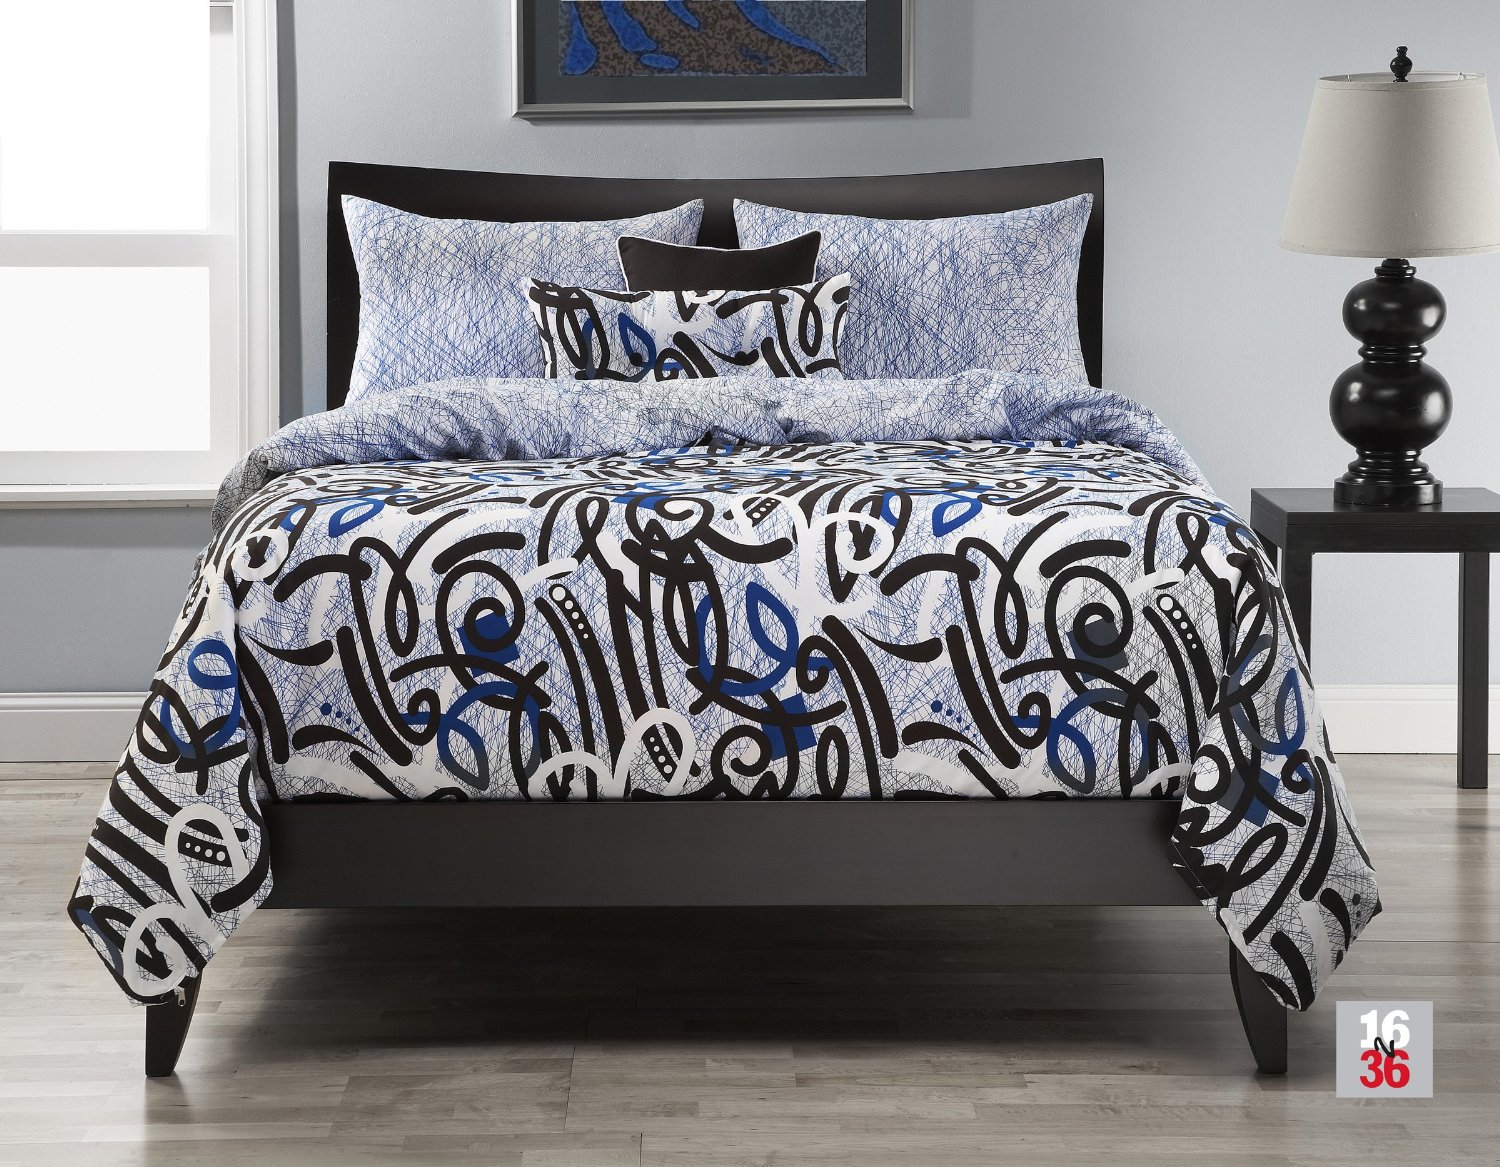 Black And White Graffiti Style Urban Modern Bed Set